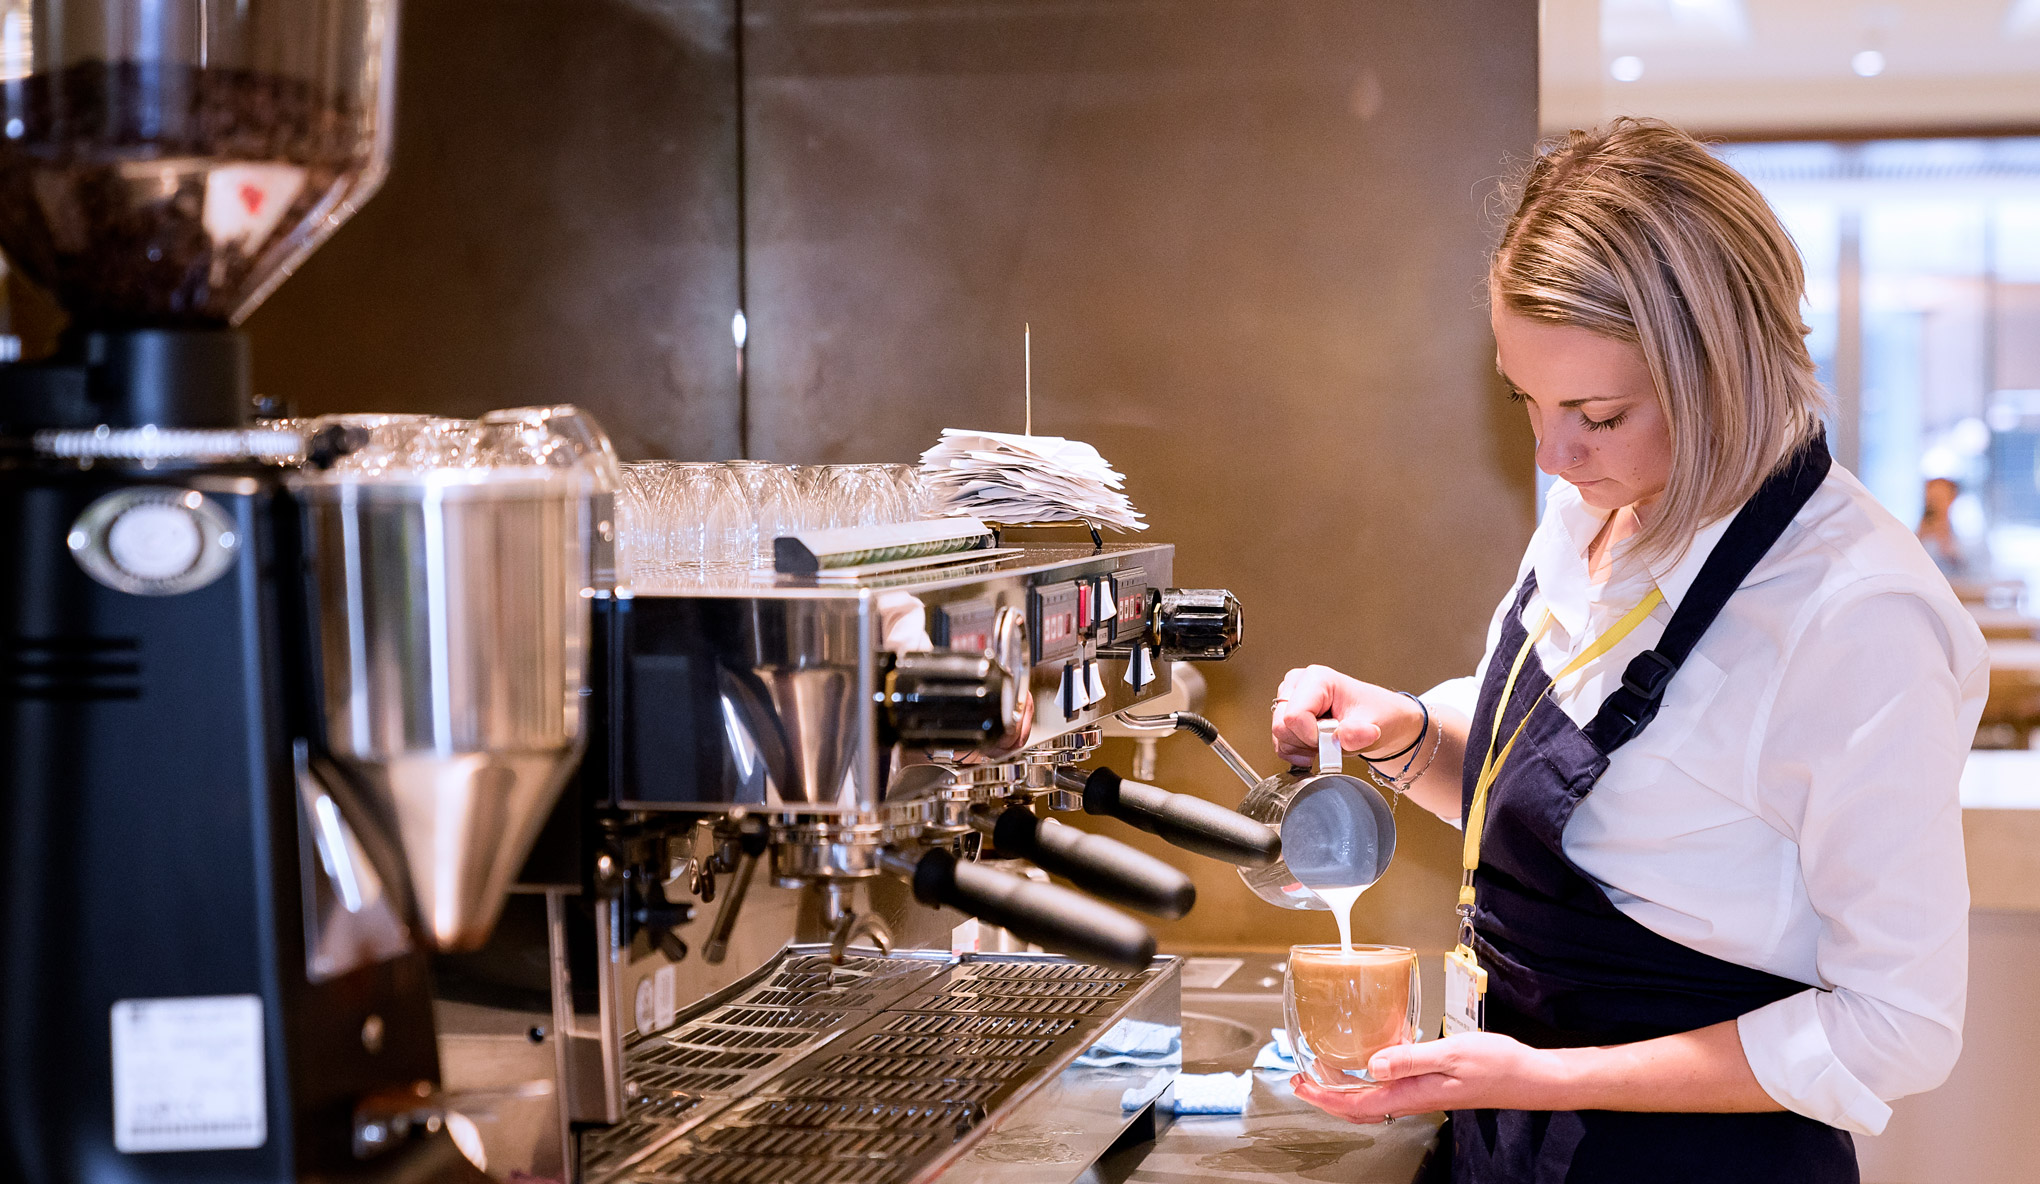 People serving delicious coffees, cakes and savoury dishes in the new café at the Royal Opera House.